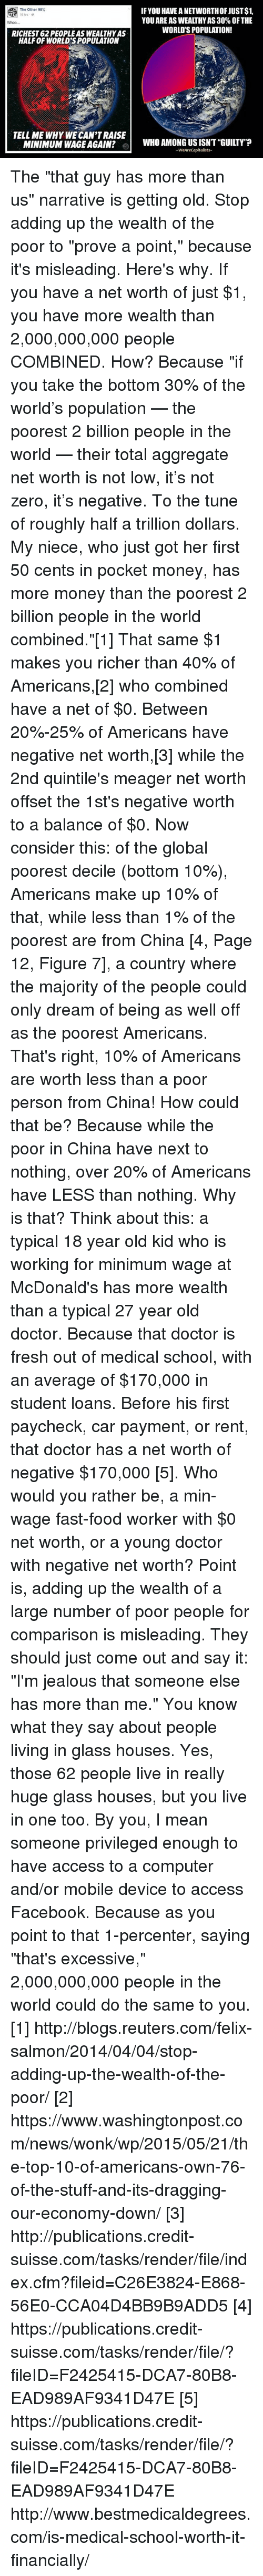 """Fast Food Worker: The Other 98%  RICHEST 62 PEOPLEAS WEALTHY AS  HALFOF WORLD'S POPULATION  TELL ME WHY WE CAN'TRAISE  MINIMUM WAGE AGAIN?  IF YOU HAVE ANETWORTHOFJUST$1.  YOU ARE ASWEALTHYAS30% OF THE  WORLD'S POPULATION!  WHO AMONGUSISNT""""GUILTY""""?  -WeArecapitalists- The """"that guy has more than us"""" narrative is getting old.  Stop adding up the wealth of the poor to """"prove a point,"""" because it's misleading.  Here's why.   If you have a net worth of just $1, you have more wealth than 2,000,000,000 people COMBINED.  How?  Because """"if you take the bottom 30% of the world's population — the poorest 2 billion people in the world — their total aggregate net worth is not low, it's not zero, it's negative. To the tune of roughly half a trillion dollars. My niece, who just got her first 50 cents in pocket money, has more money than the poorest 2 billion people in the world combined.""""[1]  That same $1 makes you richer than 40% of Americans,[2] who combined have a net of $0.  Between 20%-25% of Americans have negative net worth,[3] while the 2nd quintile's meager net worth offset the 1st's negative worth to a balance of $0.  Now consider this: of the global poorest decile (bottom 10%), Americans make up 10% of that, while less than 1% of the poorest are from China [4, Page 12, Figure 7], a country where the majority of the people could only dream of being as well off as the poorest Americans.  That's right, 10% of Americans are worth less than a poor person from China!  How could that be?  Because while the poor in China have next to nothing, over 20% of Americans have LESS than nothing.  Why is that?  Think about this: a typical 18 year old kid who is working for minimum wage at McDonald's has more wealth than a typical 27 year old doctor.  Because that doctor is fresh out of medical school, with an average of $170,000 in student loans.  Before his first paycheck, car payment, or rent, that doctor has a net worth of negative $170,000 [5].  Who would you rather be, a min-wage """